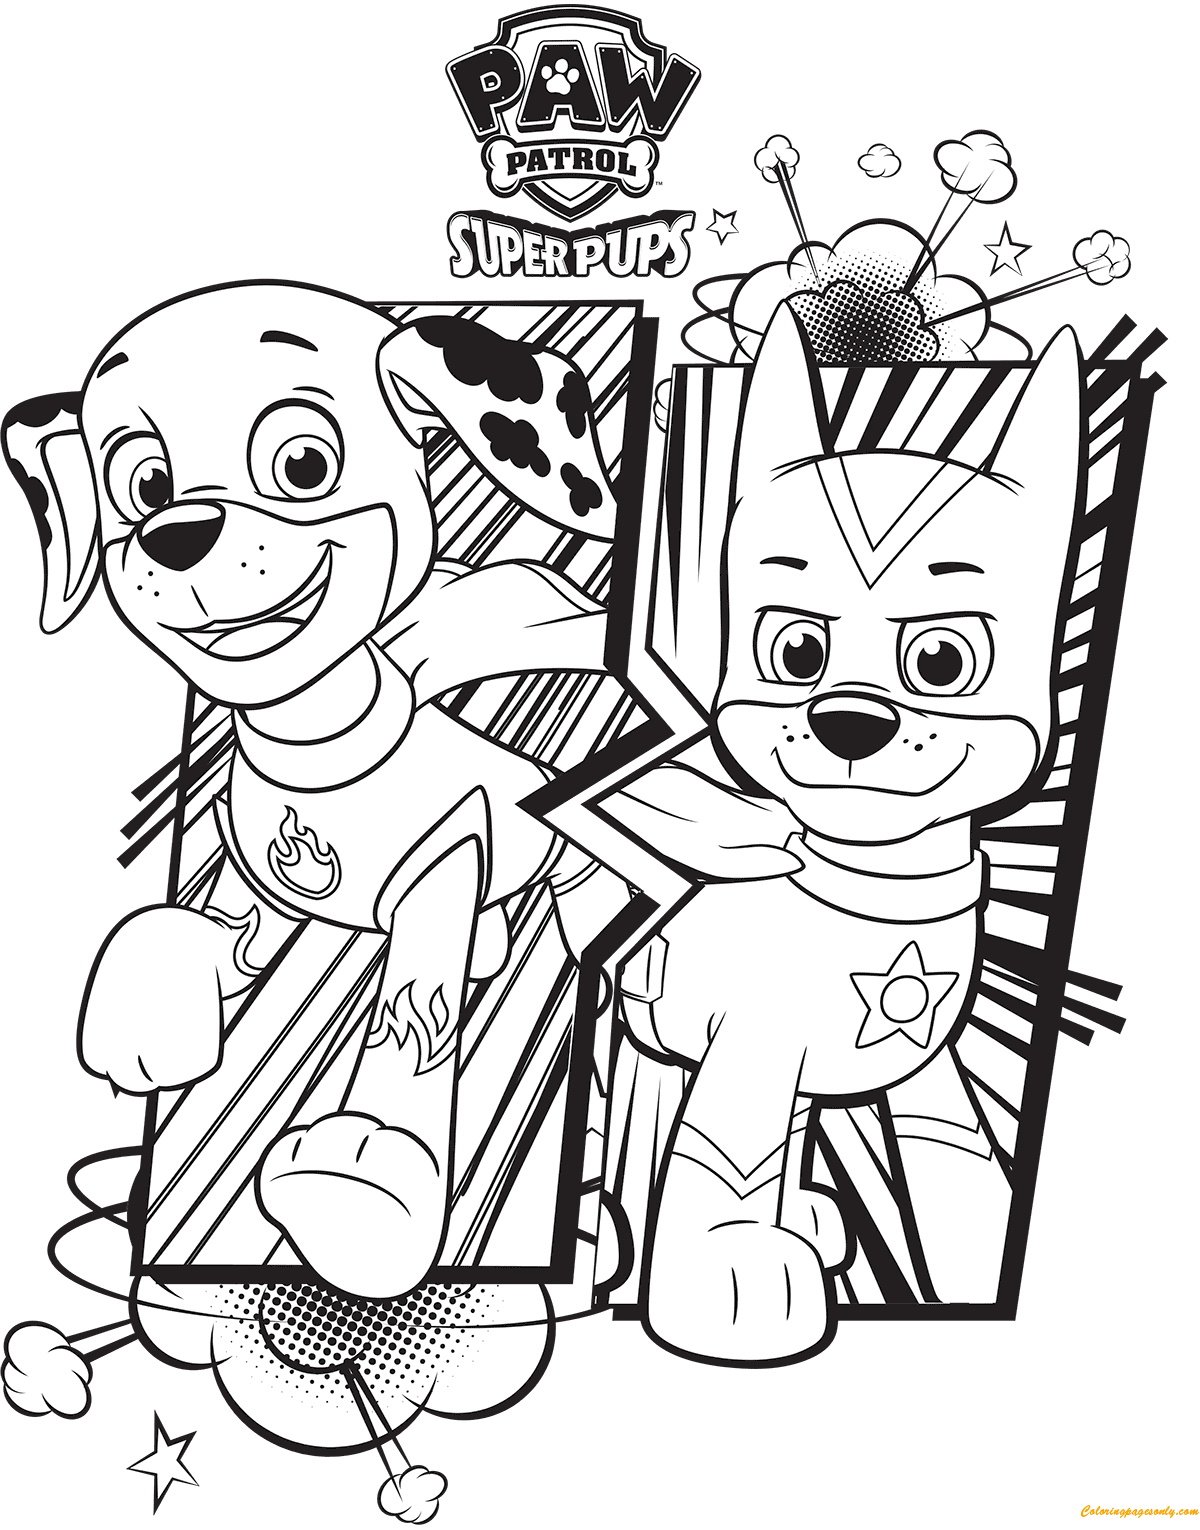 Paw Patrol Super Pups Chase And Marshall Coloring Page ...